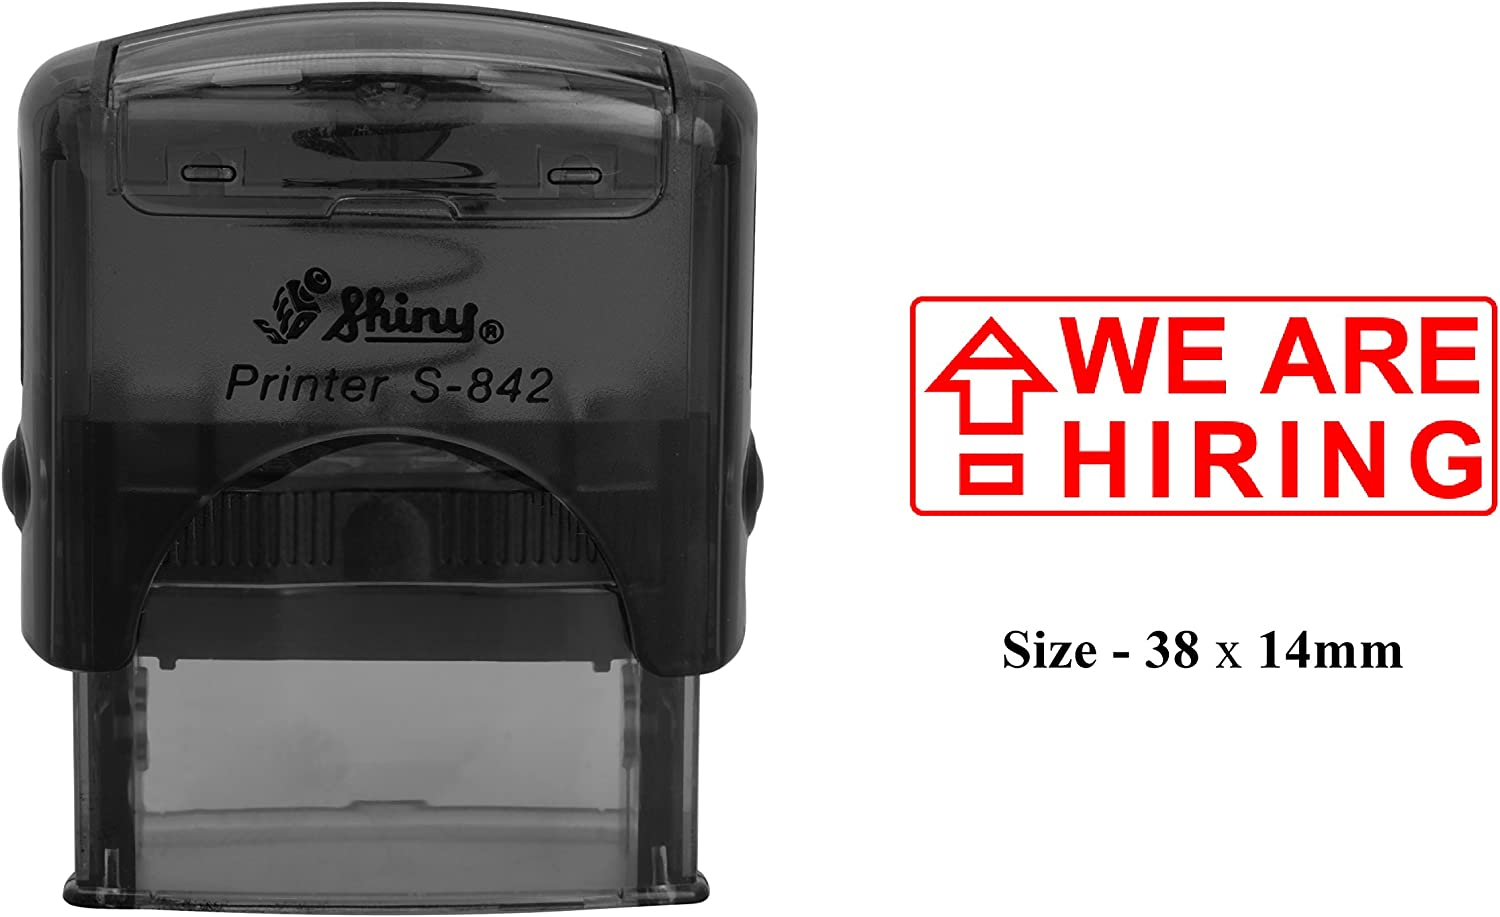 WE ARE HIRING Rubber Stamp Clear Print Office Use Shiny S-842 Self-Inking Stamp